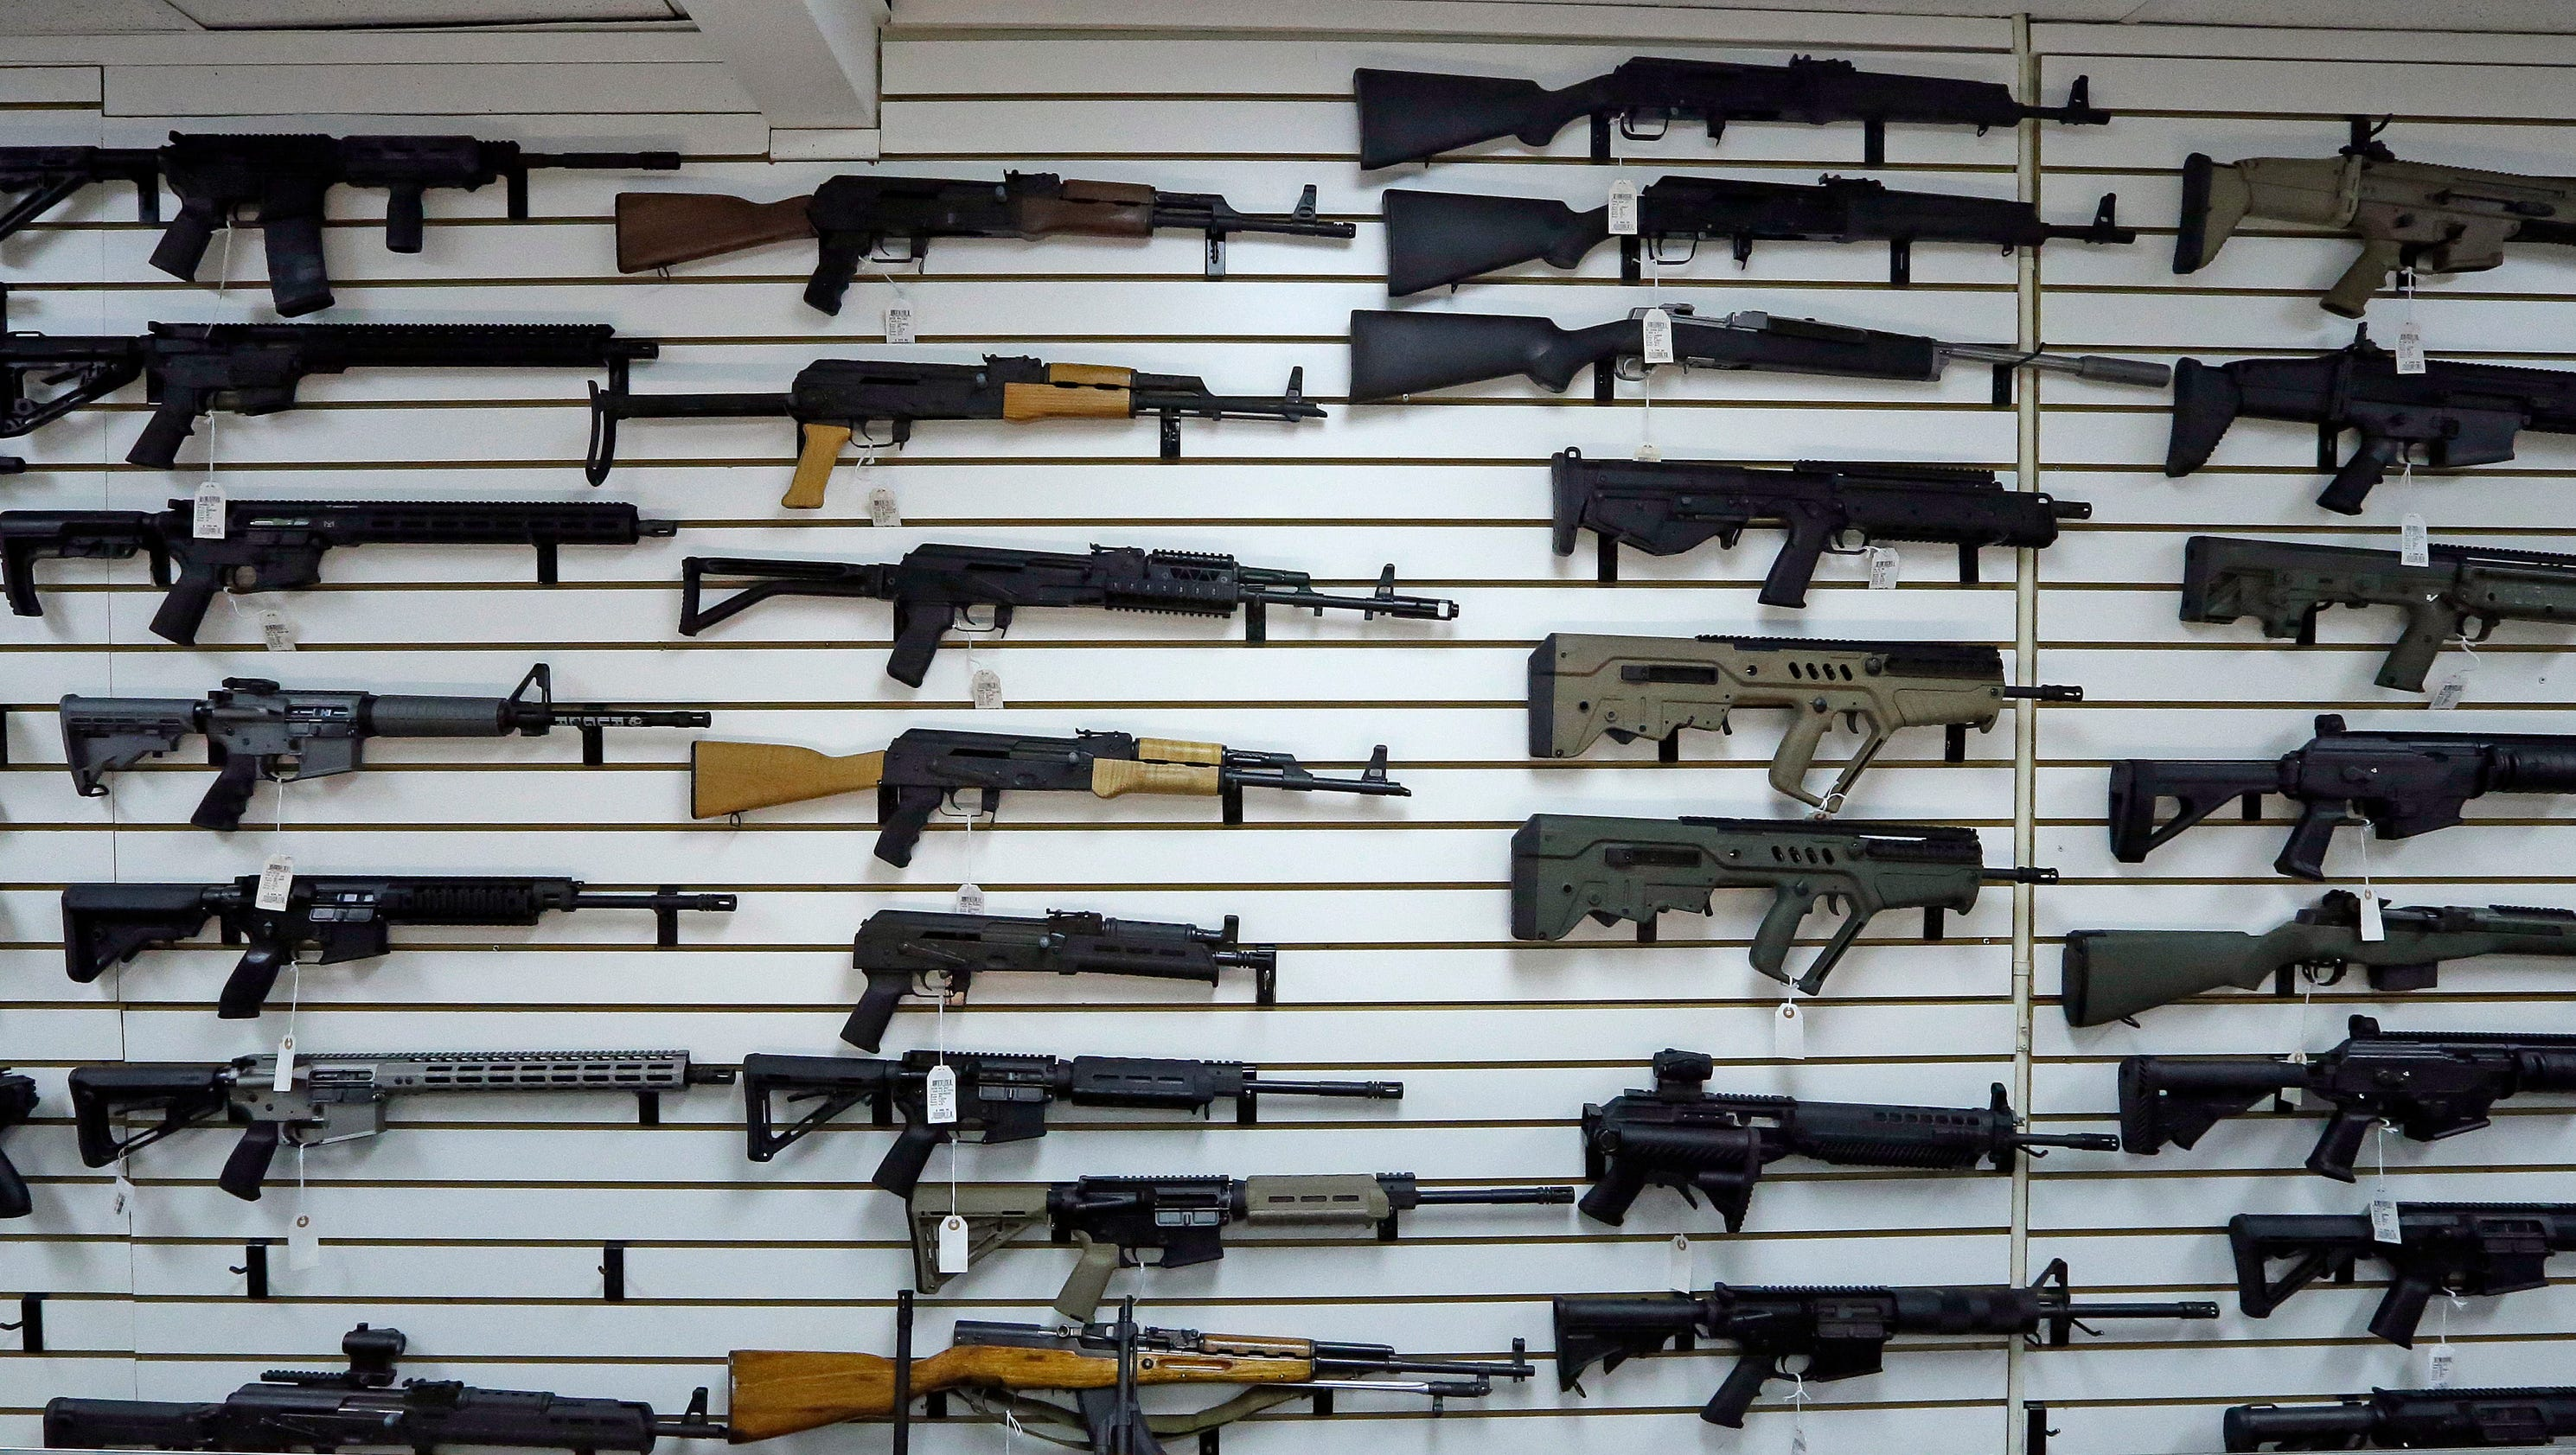 Feds issue 4,000 orders to seize guns after failed background checks